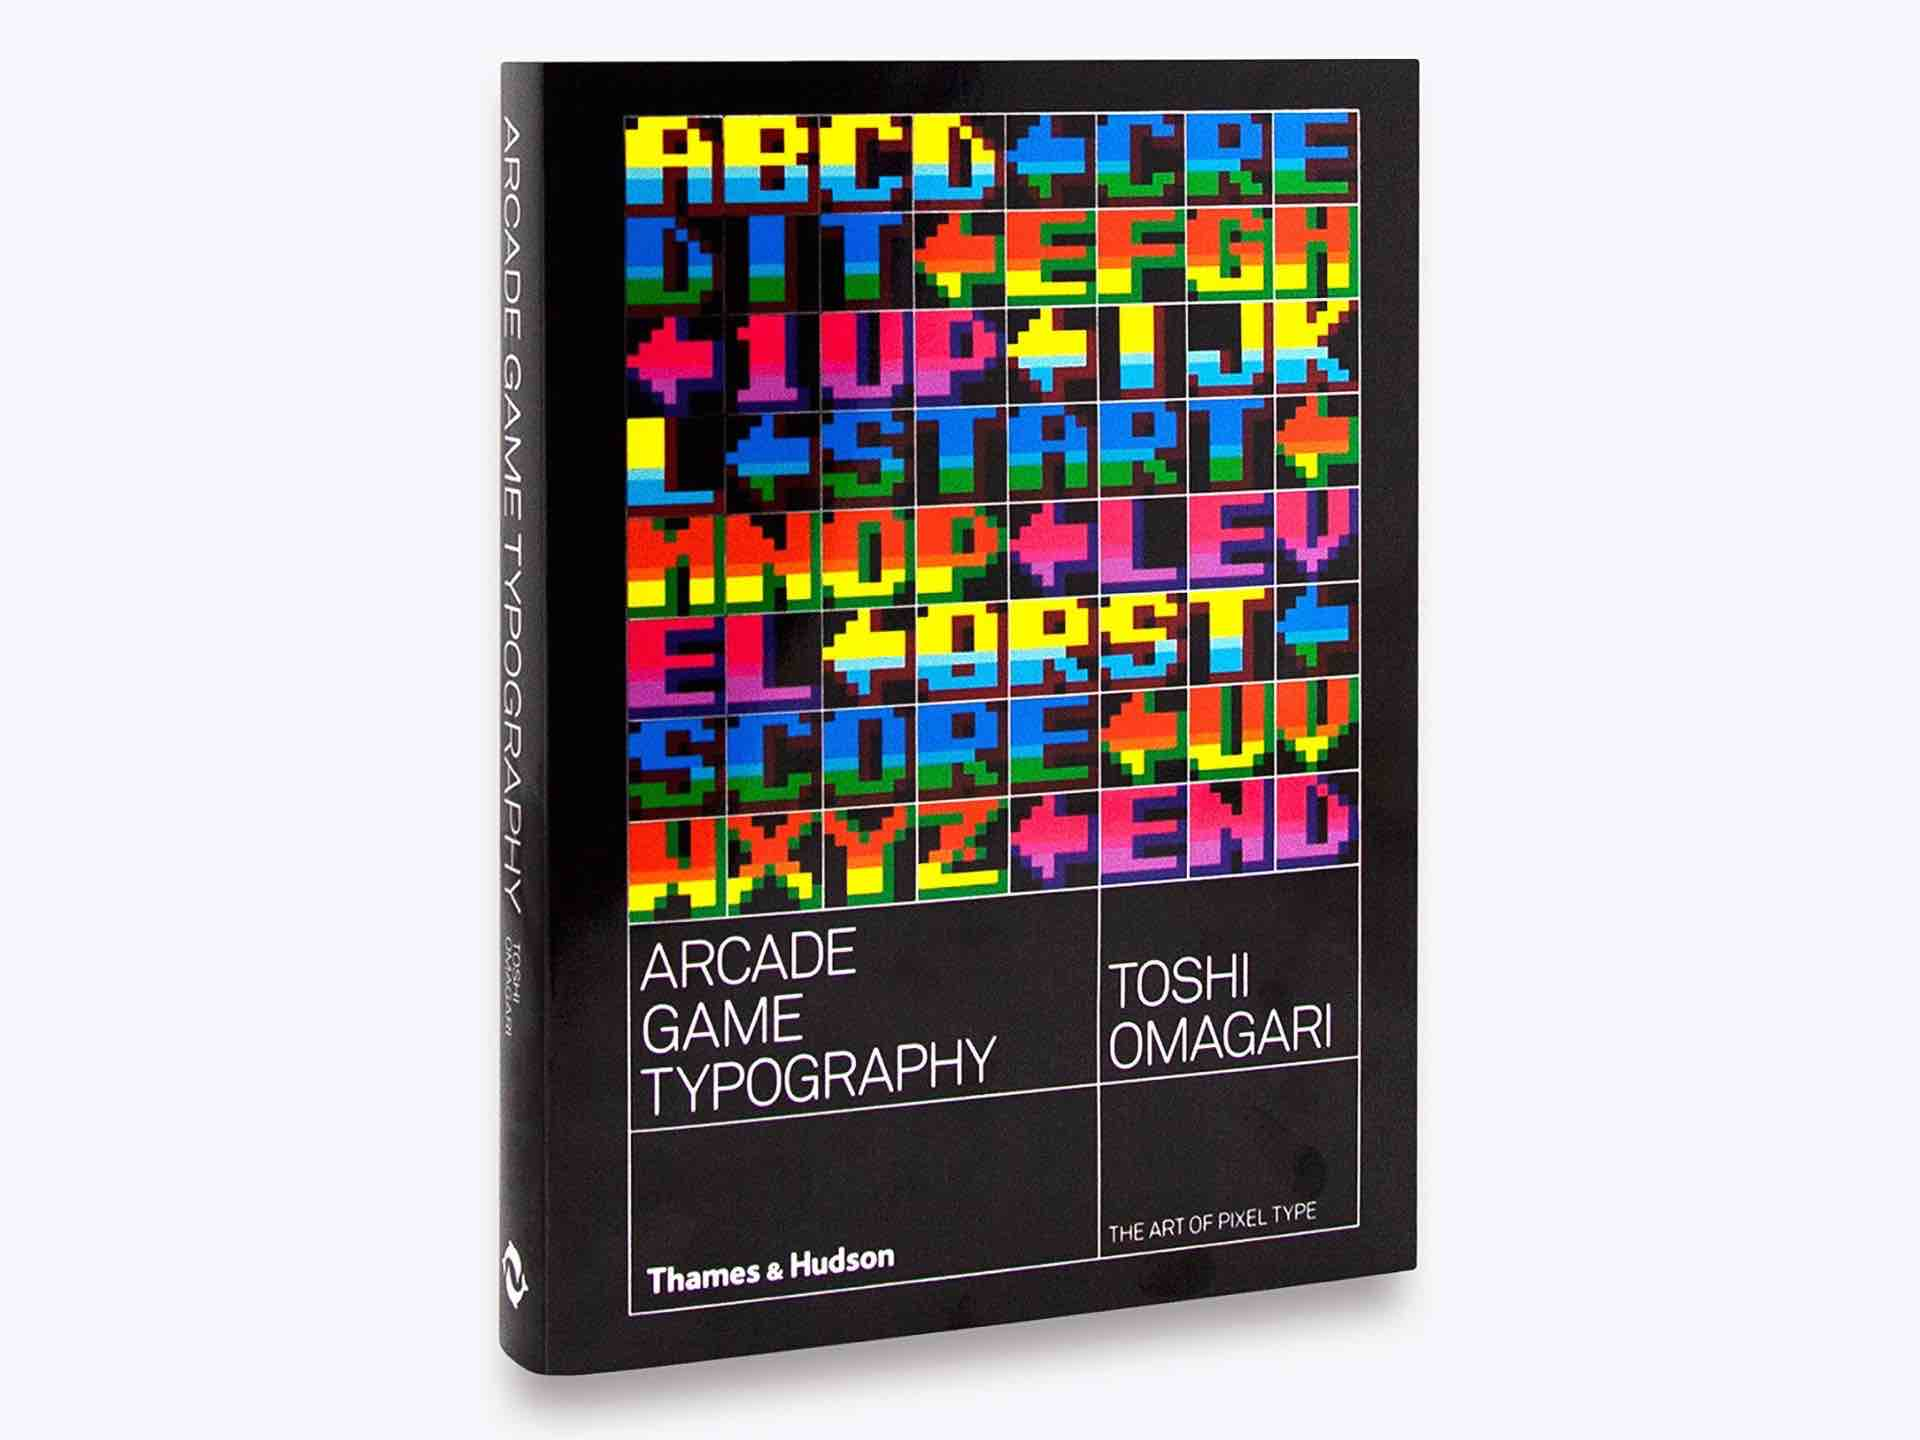 Arcade Game Typography: The Art of Pixel Type by Toshi Omagari. ($28 paperback)